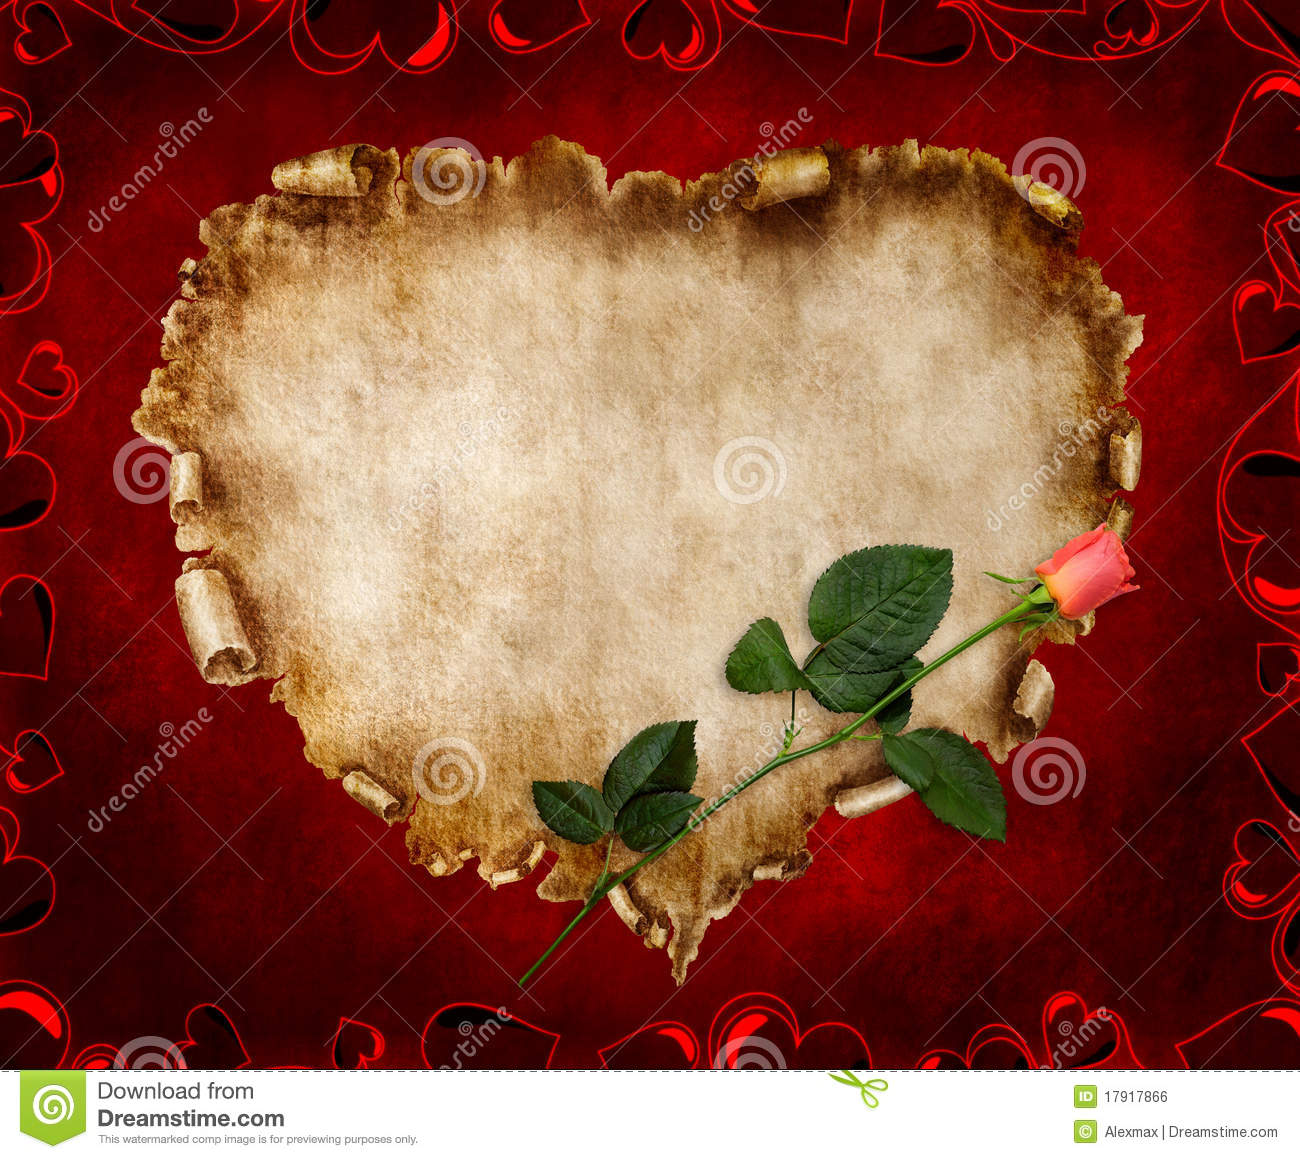 Beautiful Vintage Stylized Valentine Card Photo Image – Beautiful Valentine Cards